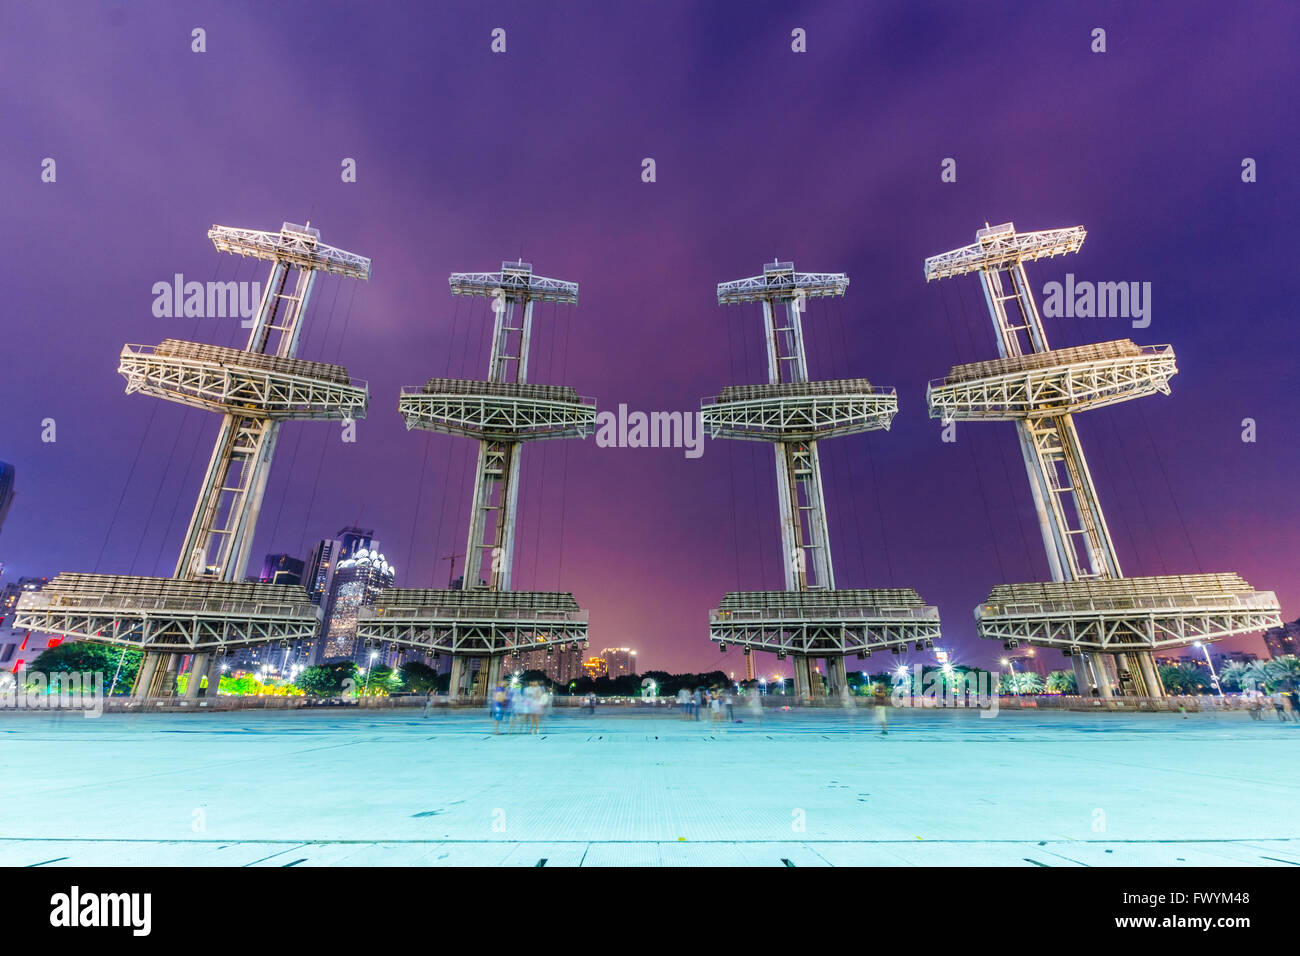 Night scene of Haixinsha Asian Games - Stock Image